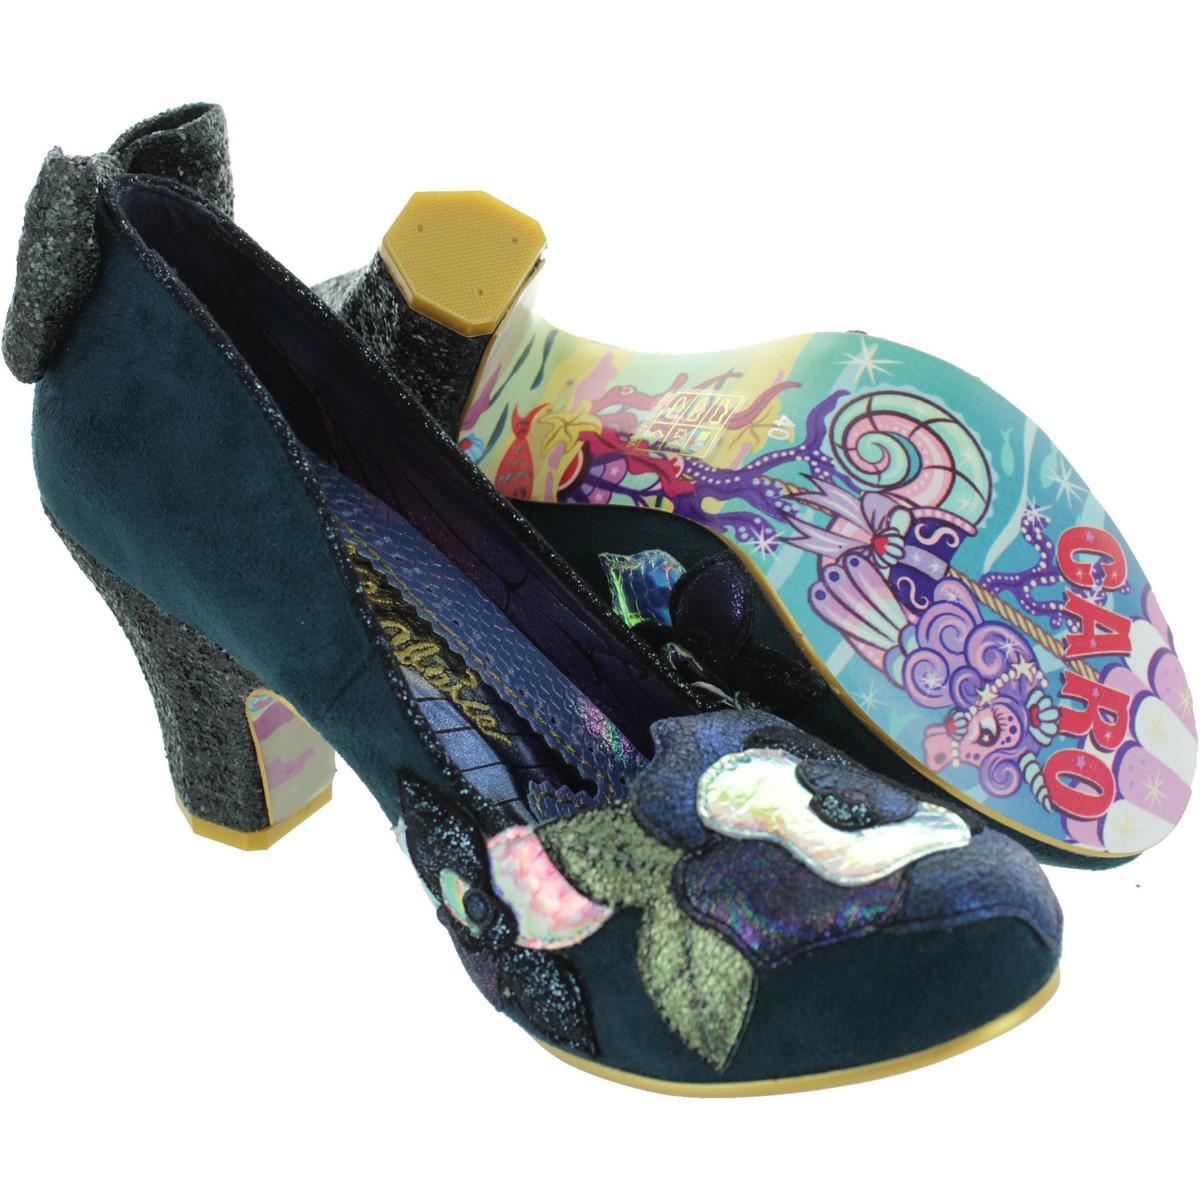 21fe99bdf6 Irregular Choice Endless Dreams Women s Court Shoes In Green in ...